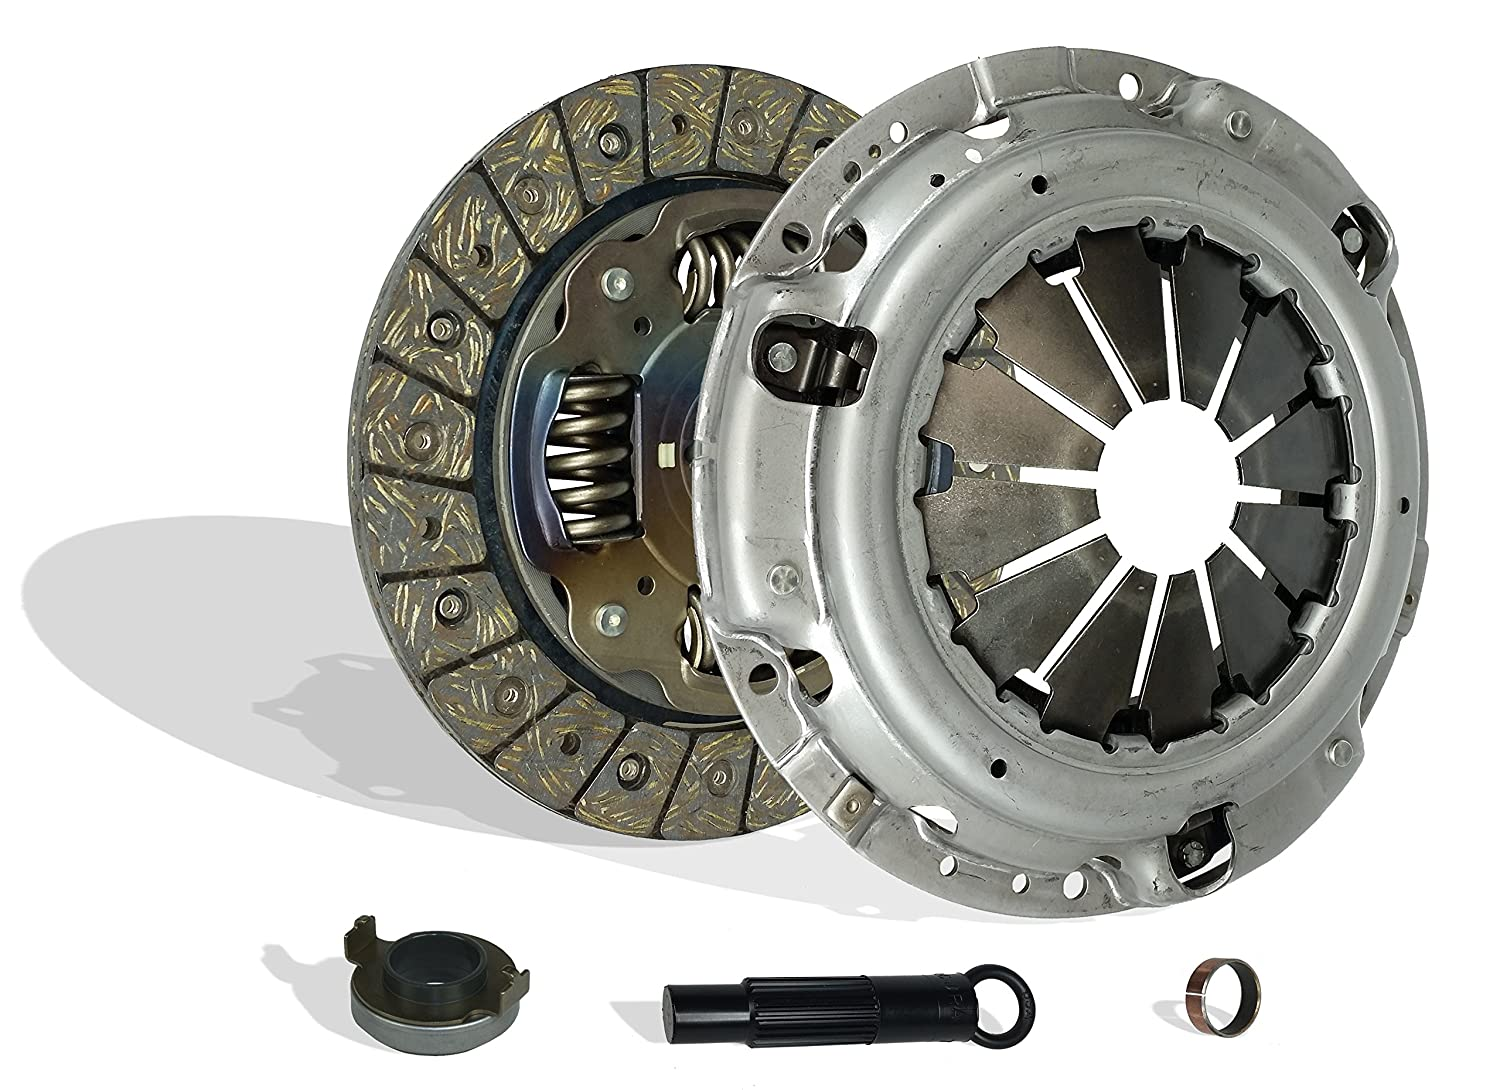 Clutch Kit Works With Honda Accord Ex Dx Special Edition Value Coupe 2-Door Sedan 4-Door 2003-2007 2.4L l4 GAS DOHC Naturally Aspirated (Clutch Kit Works With For Positive Step Flywheel 1-1/6' x 24T Disc; ) Southeast Clutch